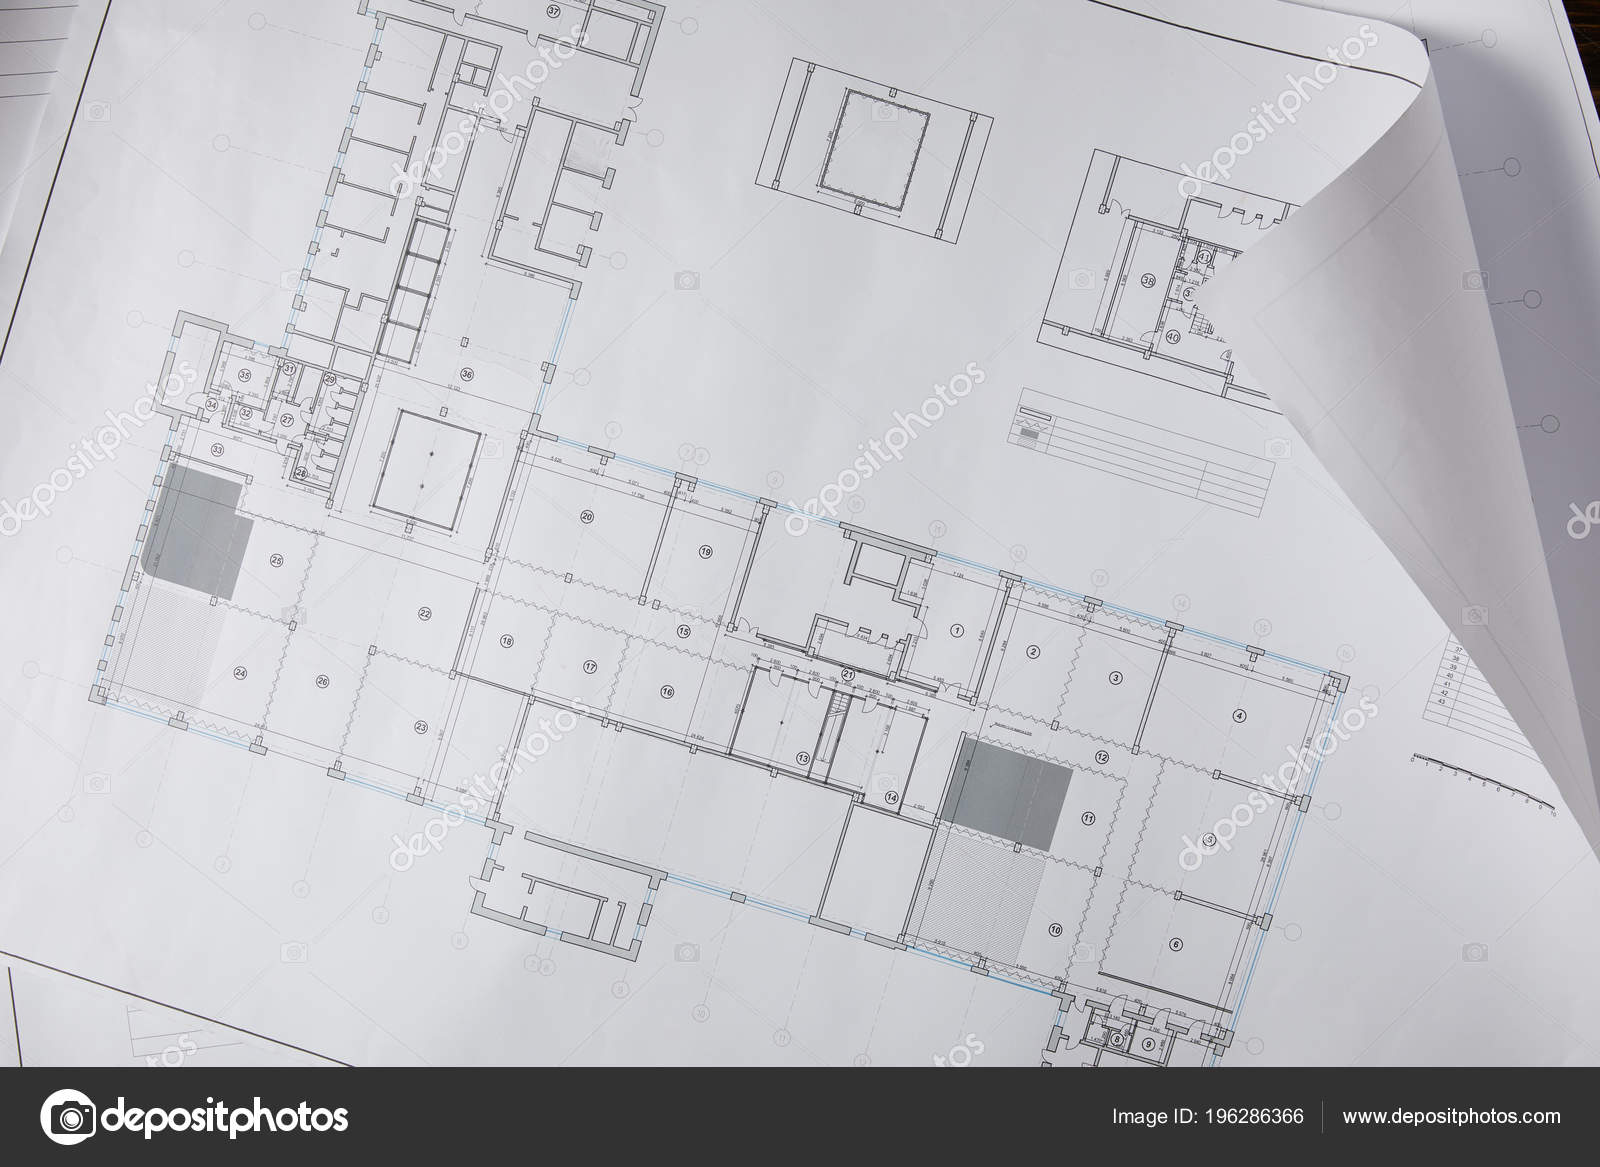 View architectural blueprint white paper stock photo view architectural blueprint white paper stock photo malvernweather